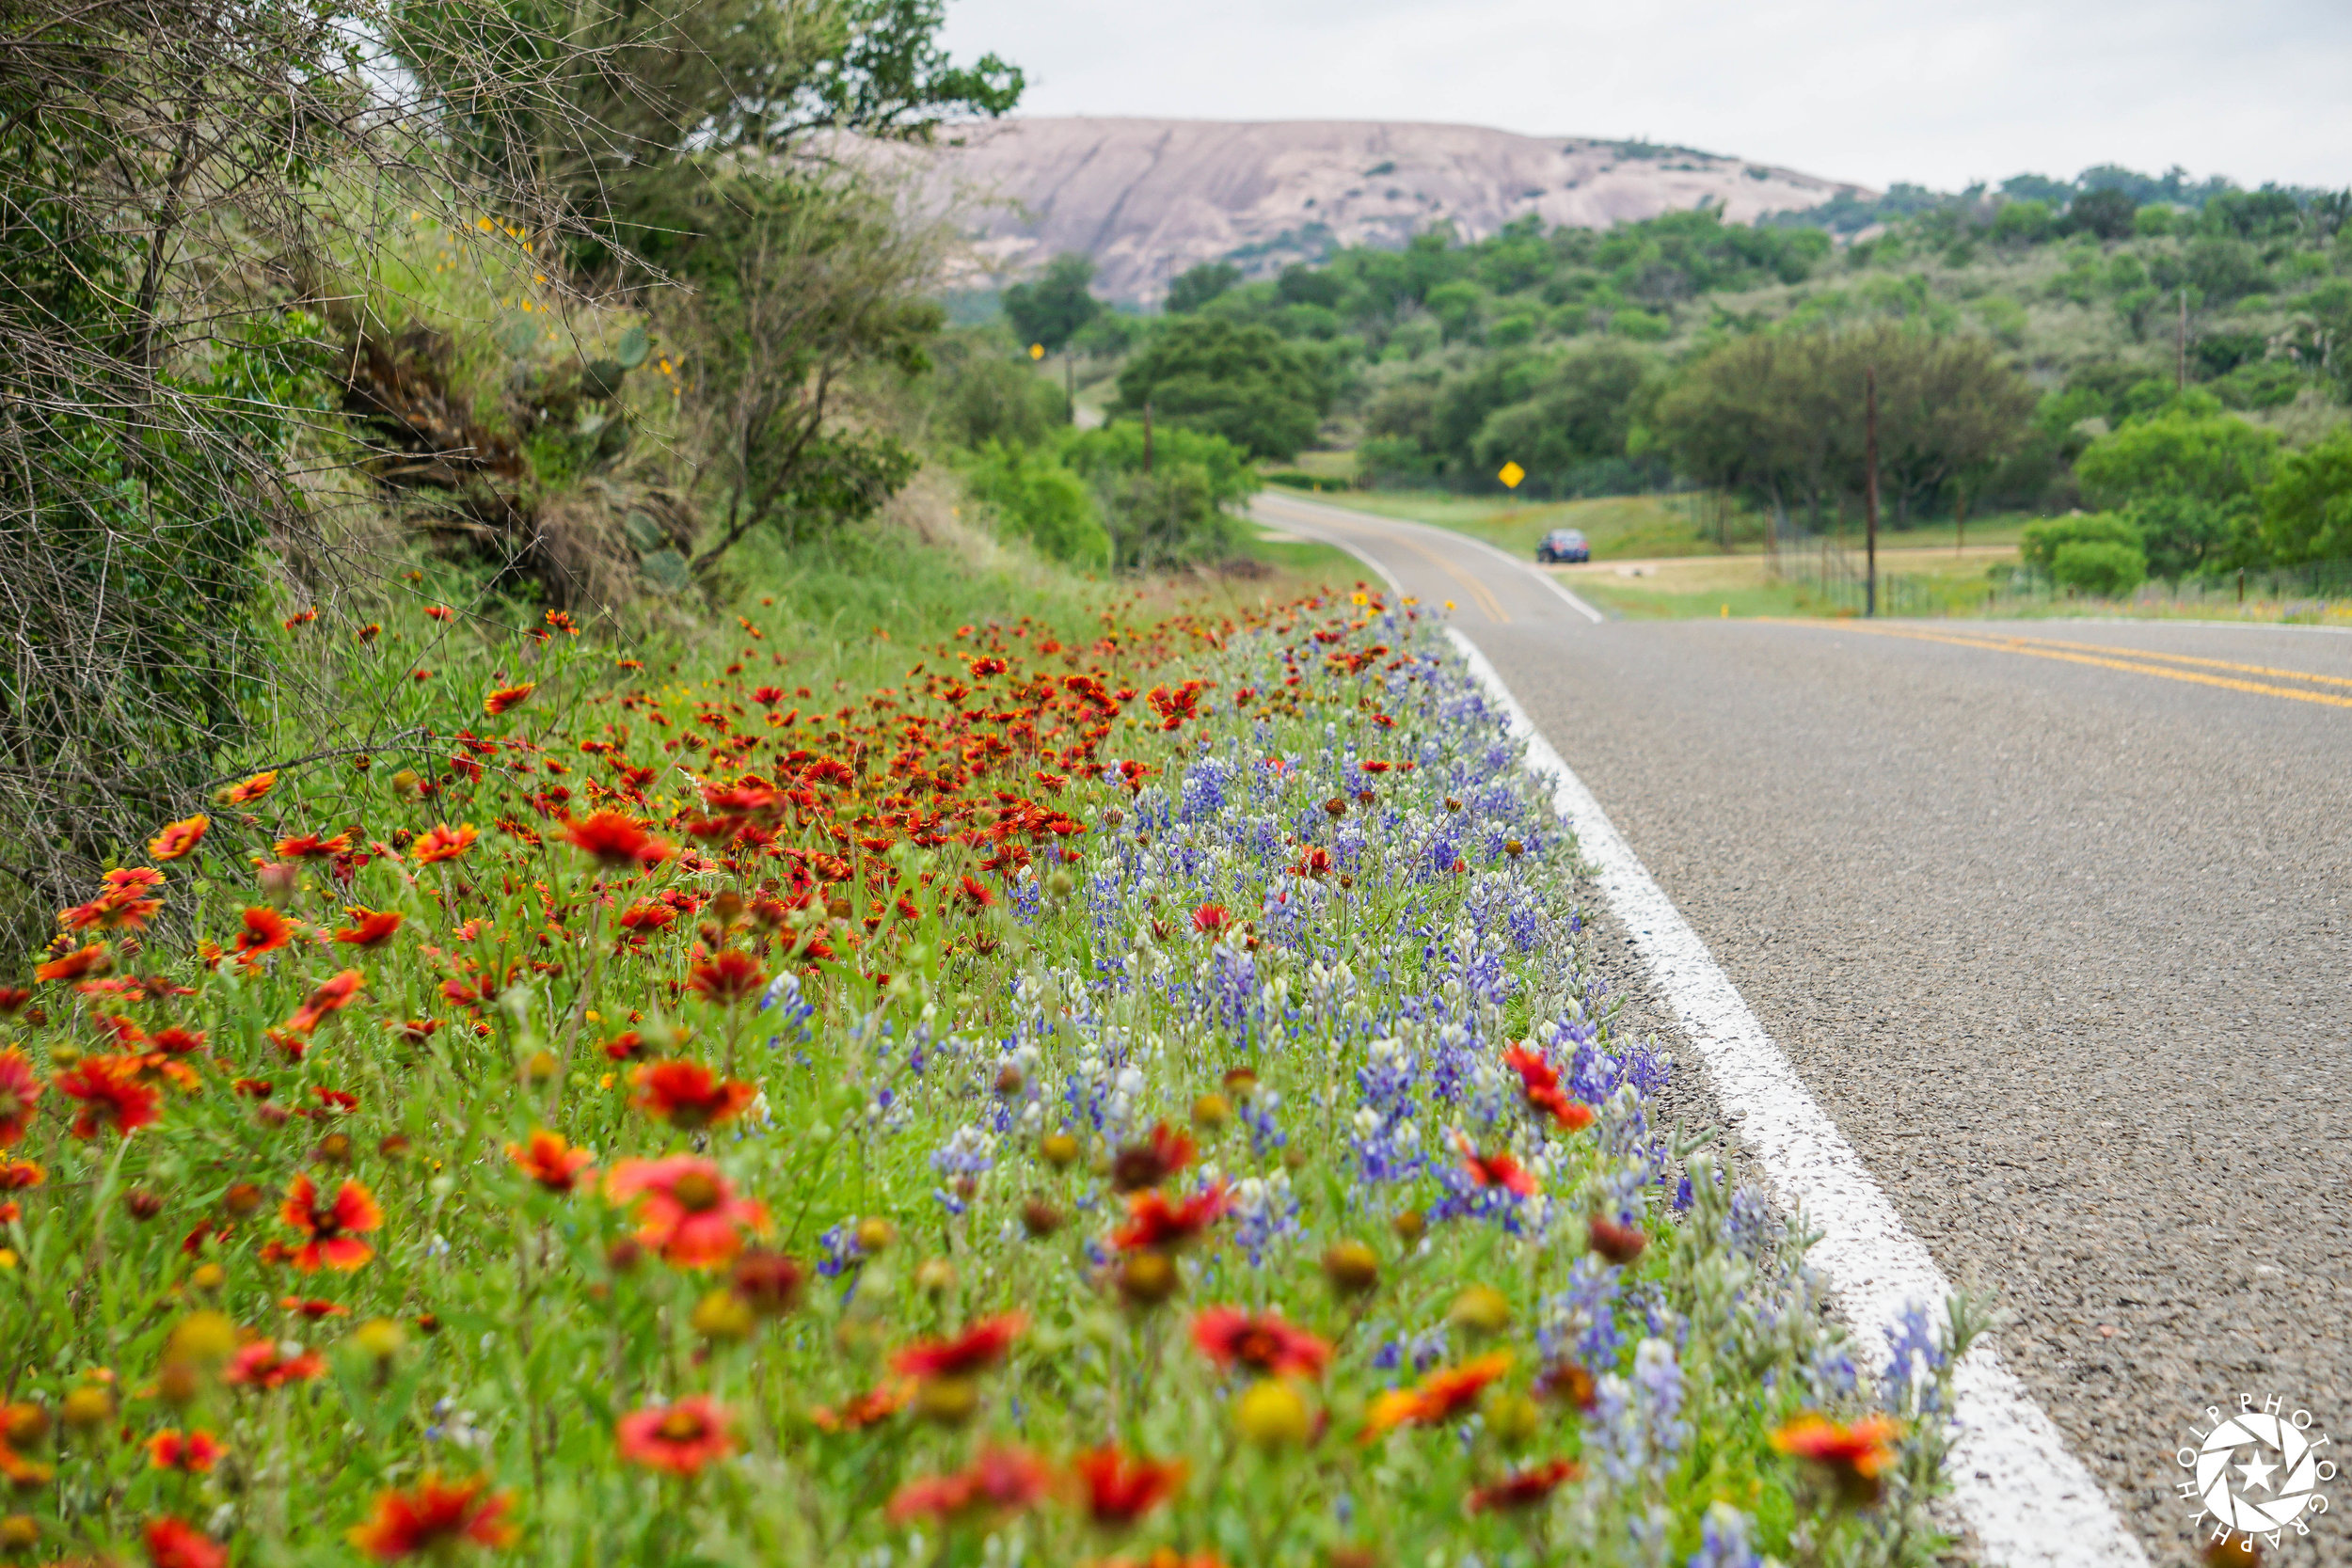 Texas Hill Country Scenic Drive Map Top 7 Scenic Drives in Texas Hill Country